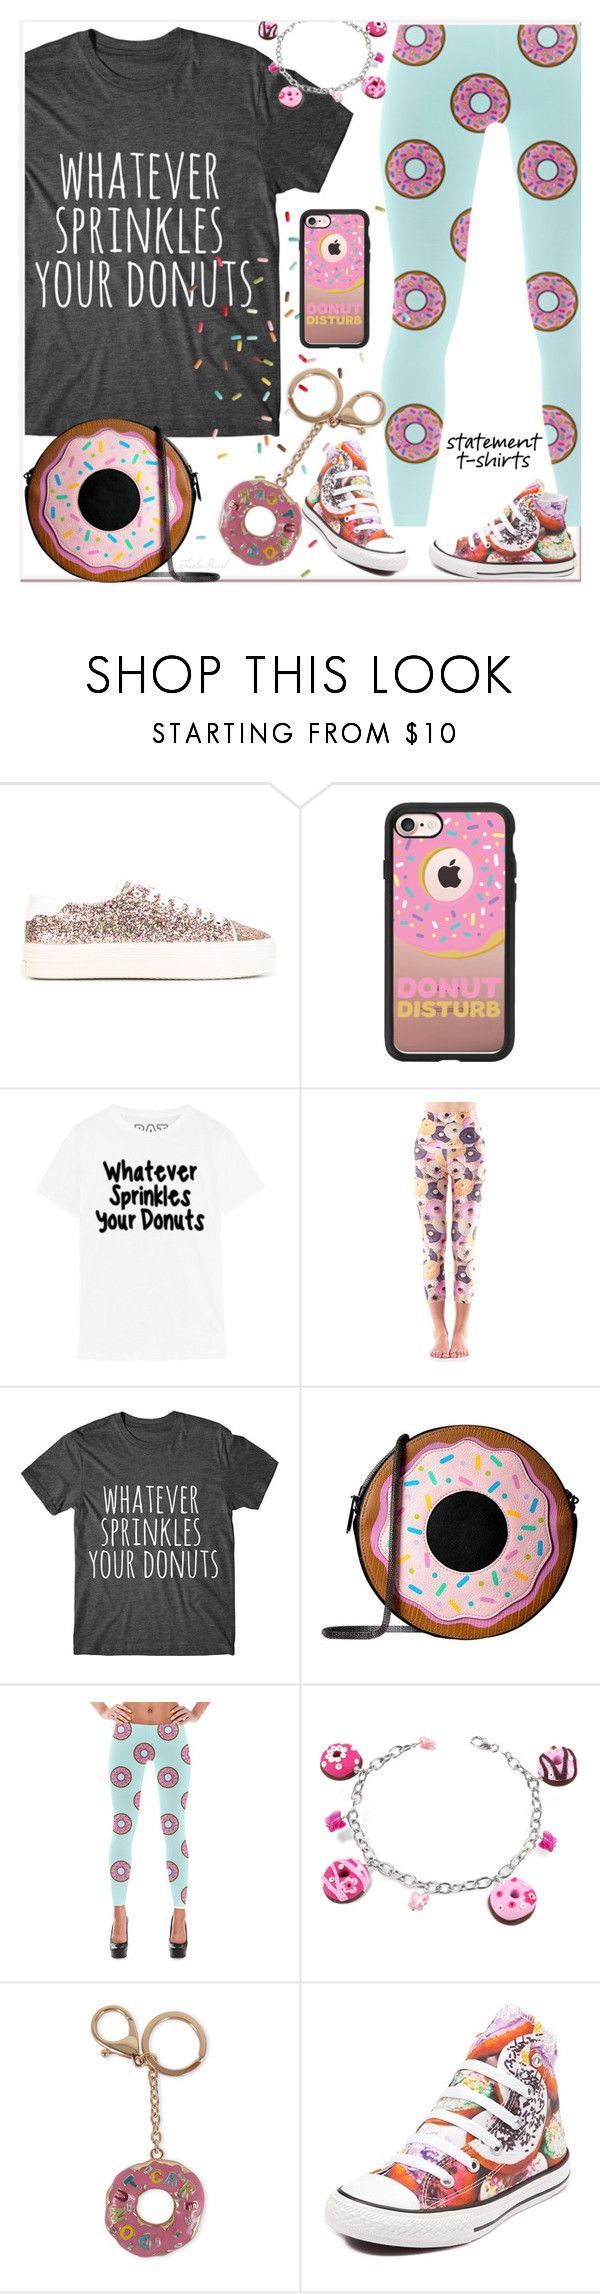 """Whatever Sprinkles Your Donuts"" by theseapearl ❤ liked on Polyvore featuring Yves Saint Laurent, Casetify, Emily Hsu Designs, Circus by Sam Edelman, Dolci Gioie, Viola, Converse, outfit, teen and trend"